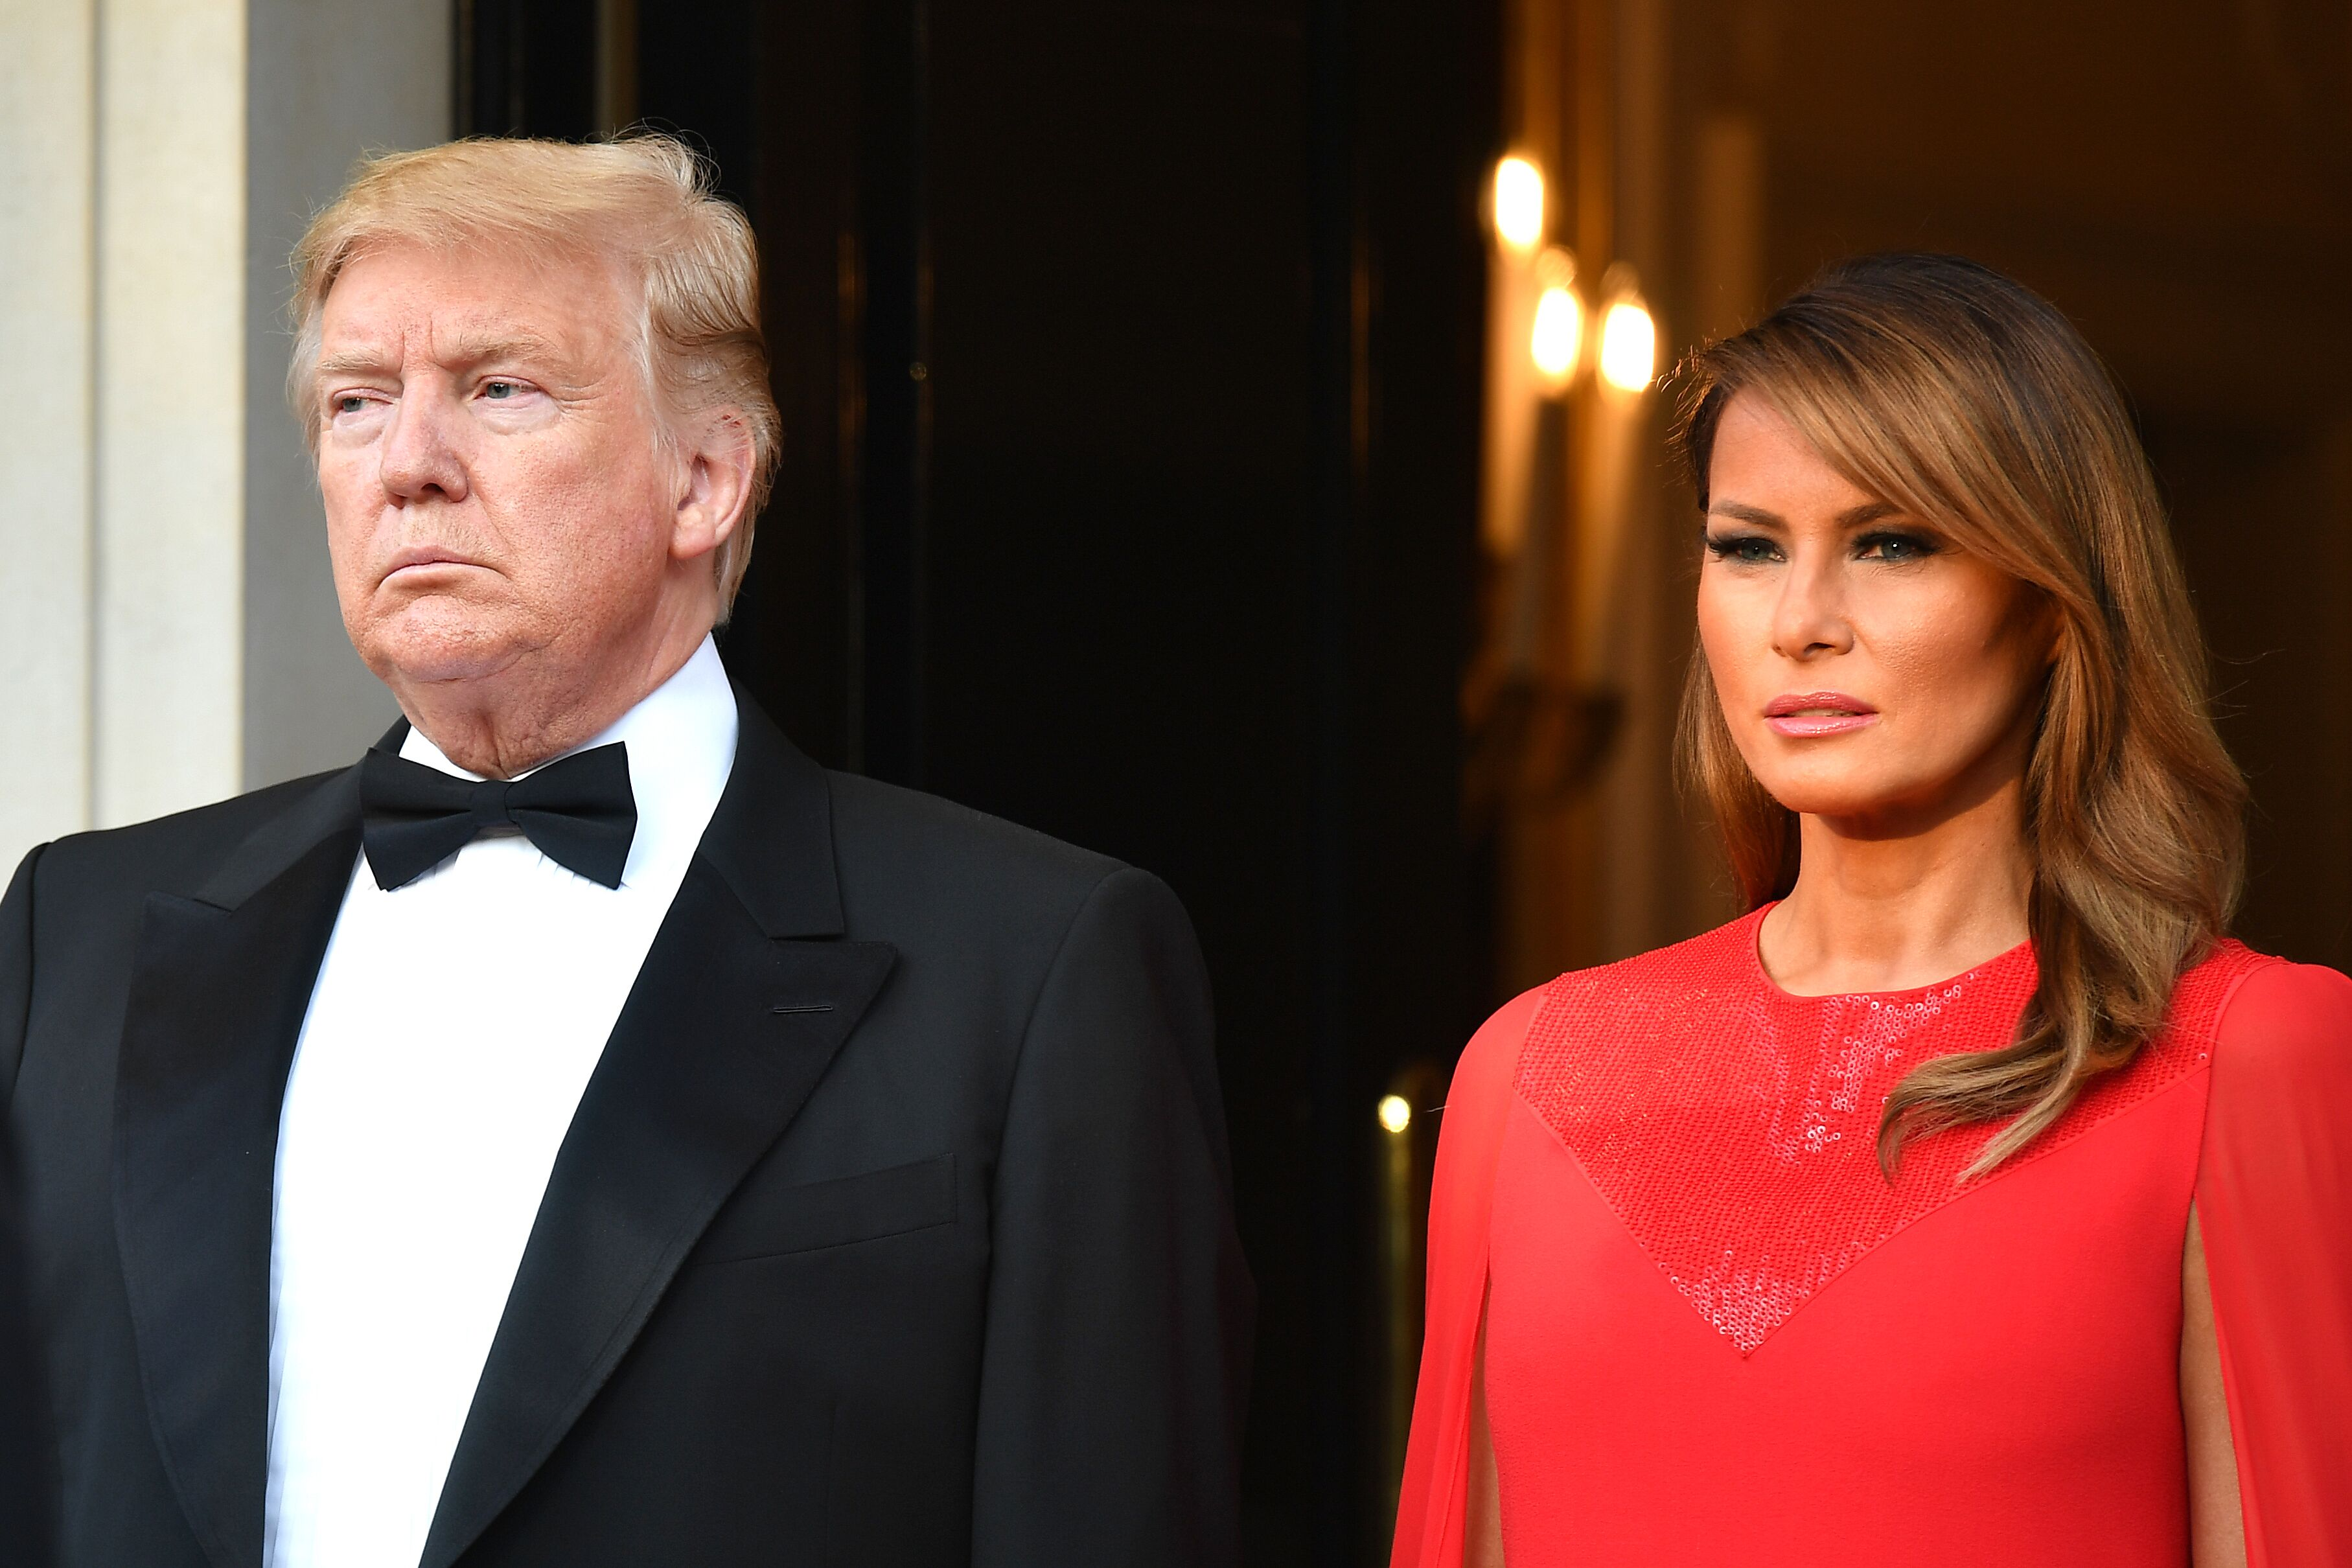 President Donald Trump and First Lady Melania Trump host a dinner at Winfield House during their state visit on June 4, 2019 in London, England. | Source: Getty Images